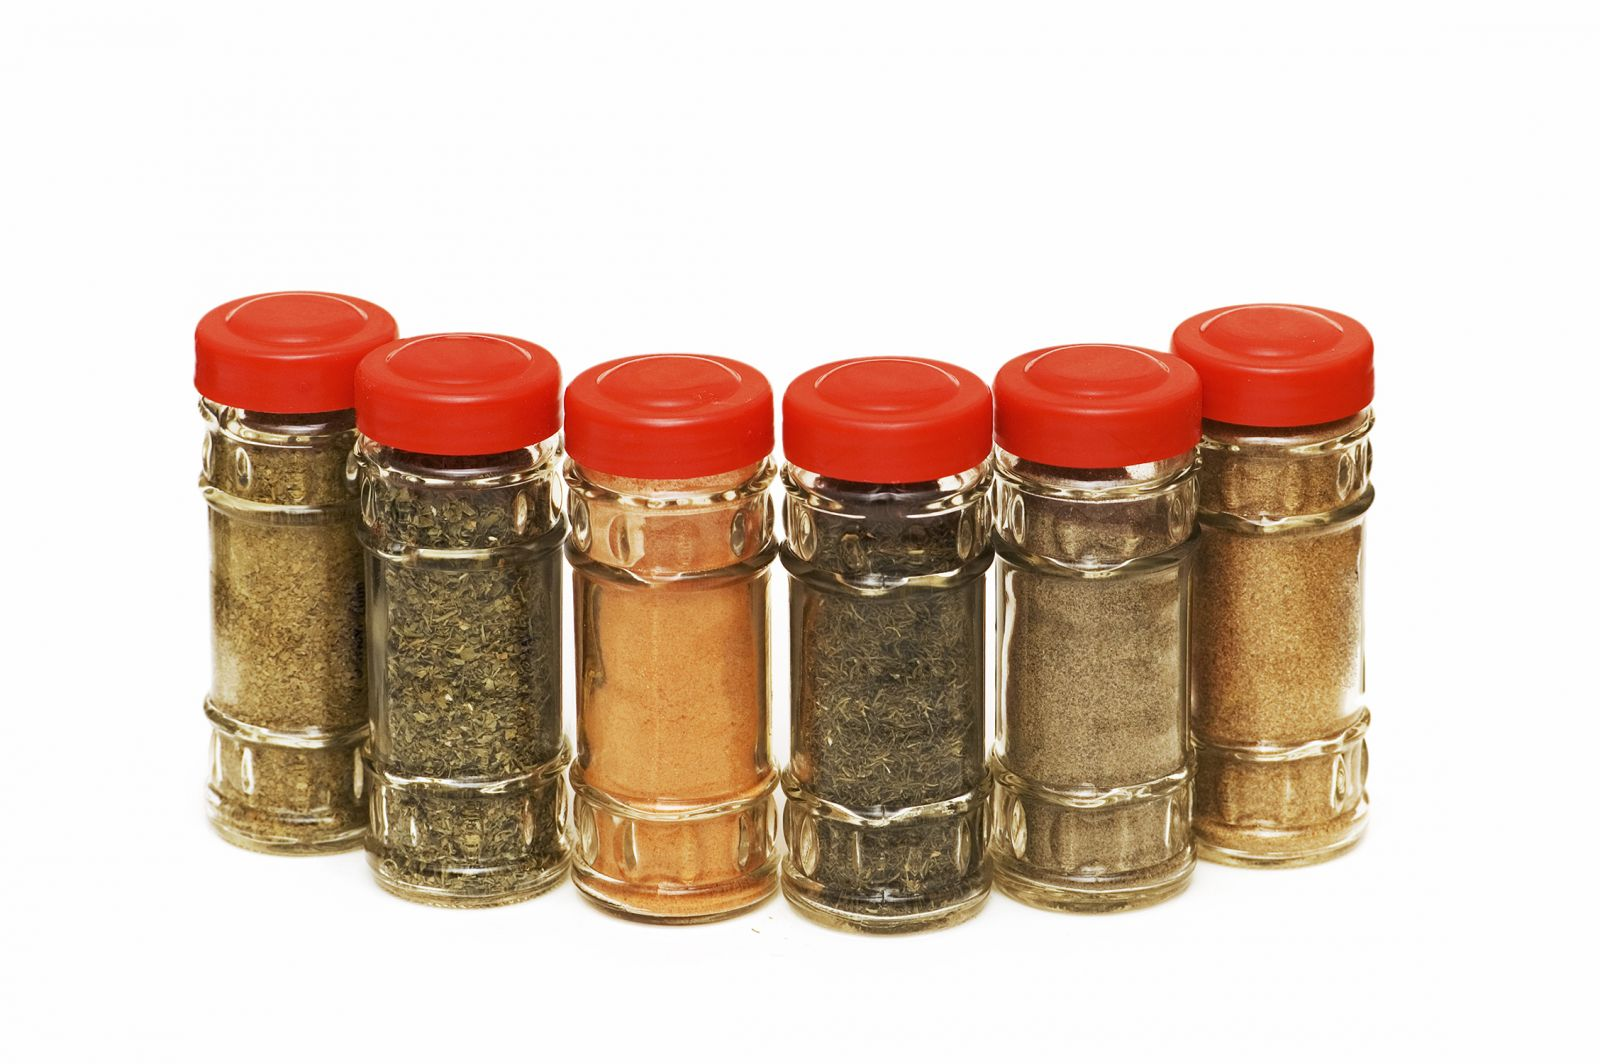 Dried spices with health benefits